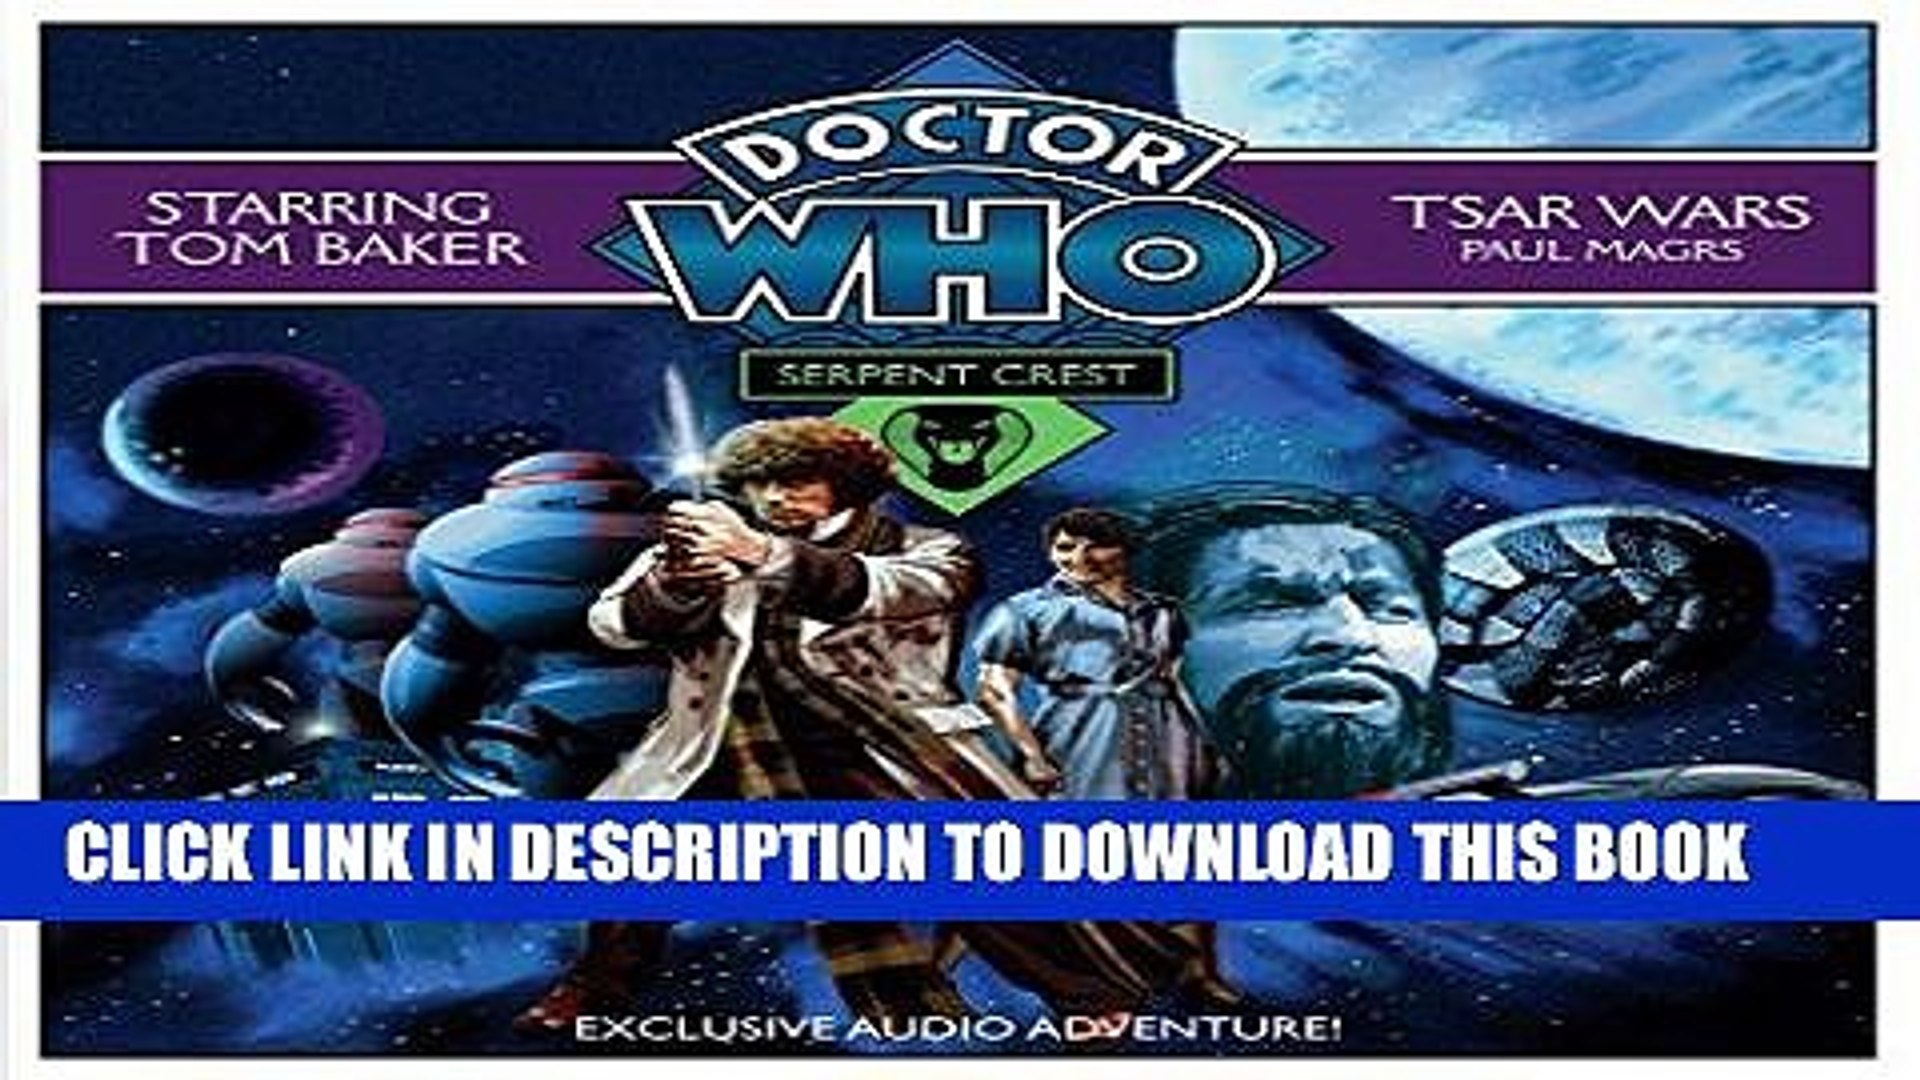 Read Now Doctor Who: Serpent Crest #1/Tsar Wars: An Exclusive Audio Adventure Starring Tom Baker